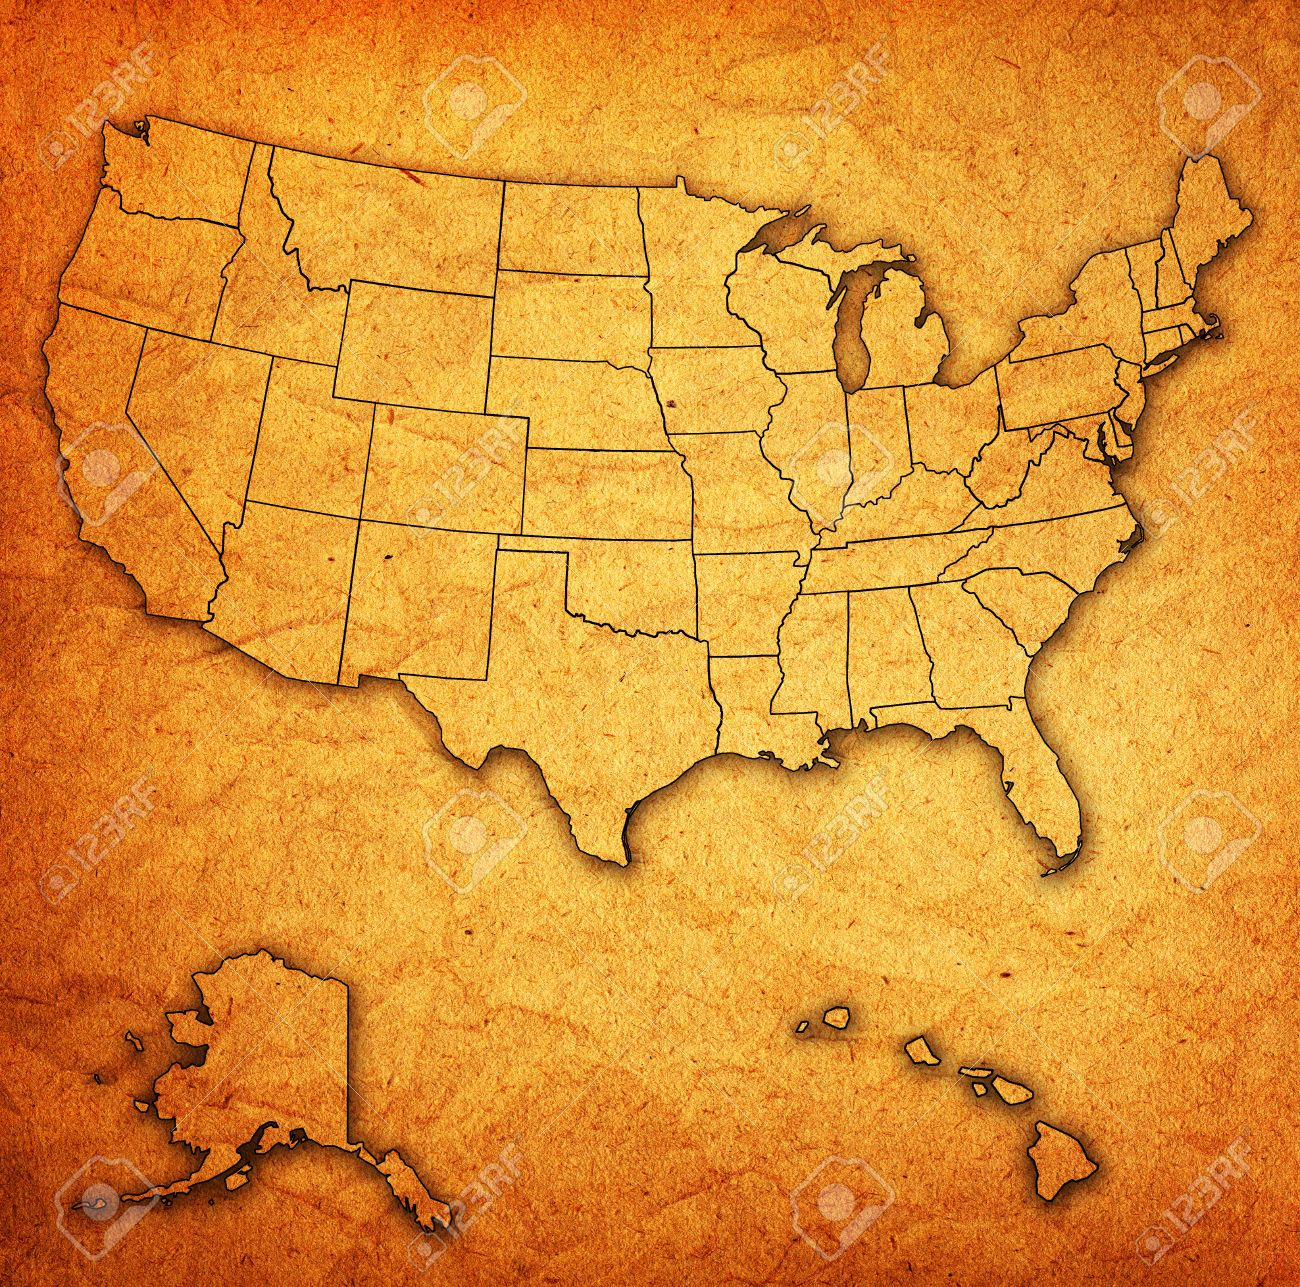 Old Vintage Map Of Usa With State Borders Stock Photo Picture And - Mal of usa